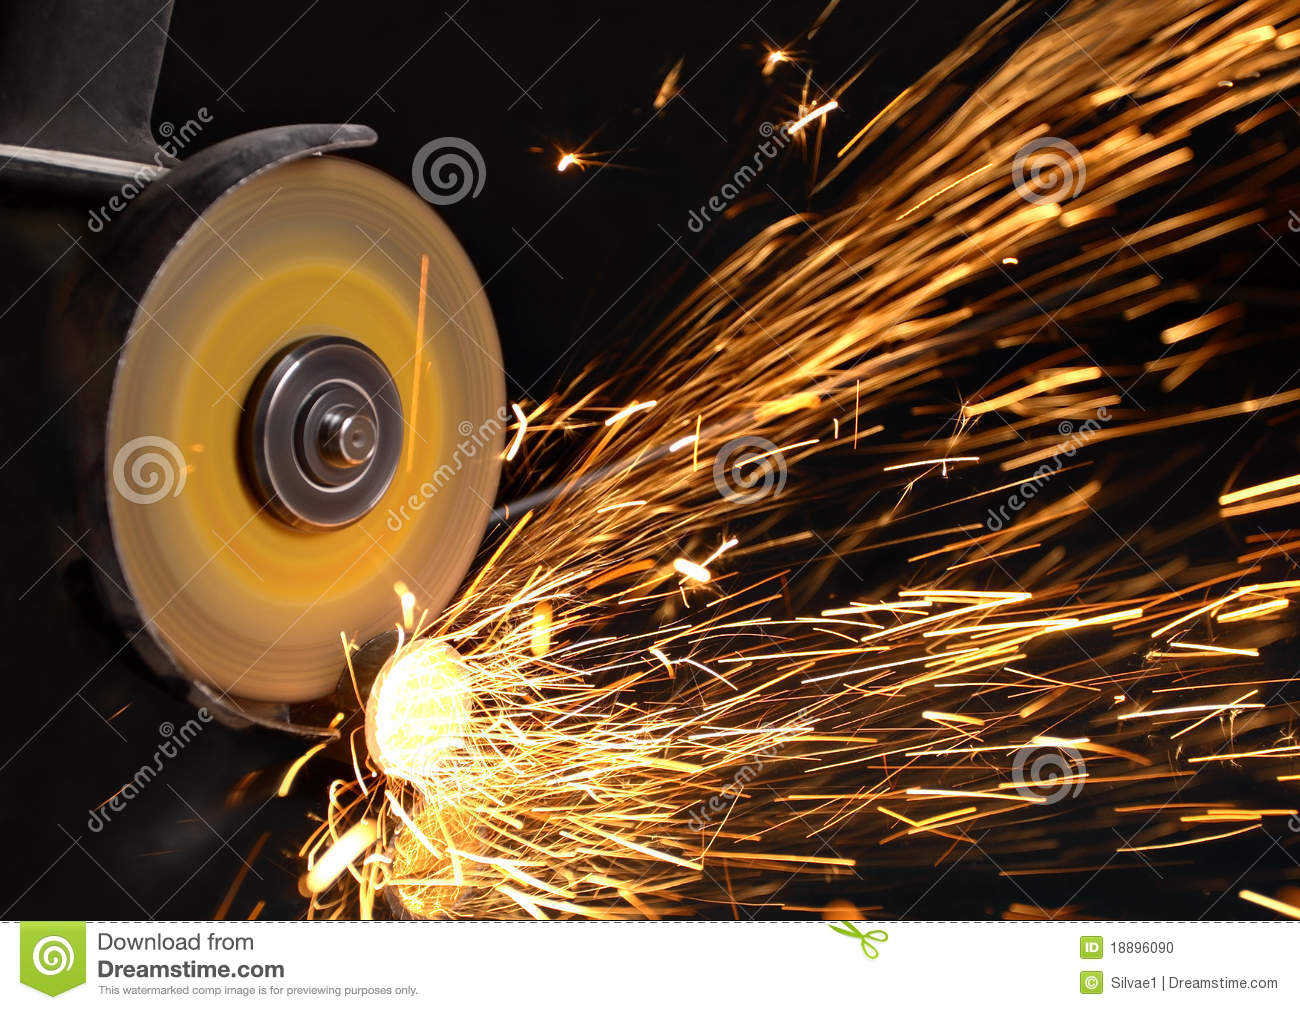 Sparks At Grinding Material Stock Photo  Image 18896090